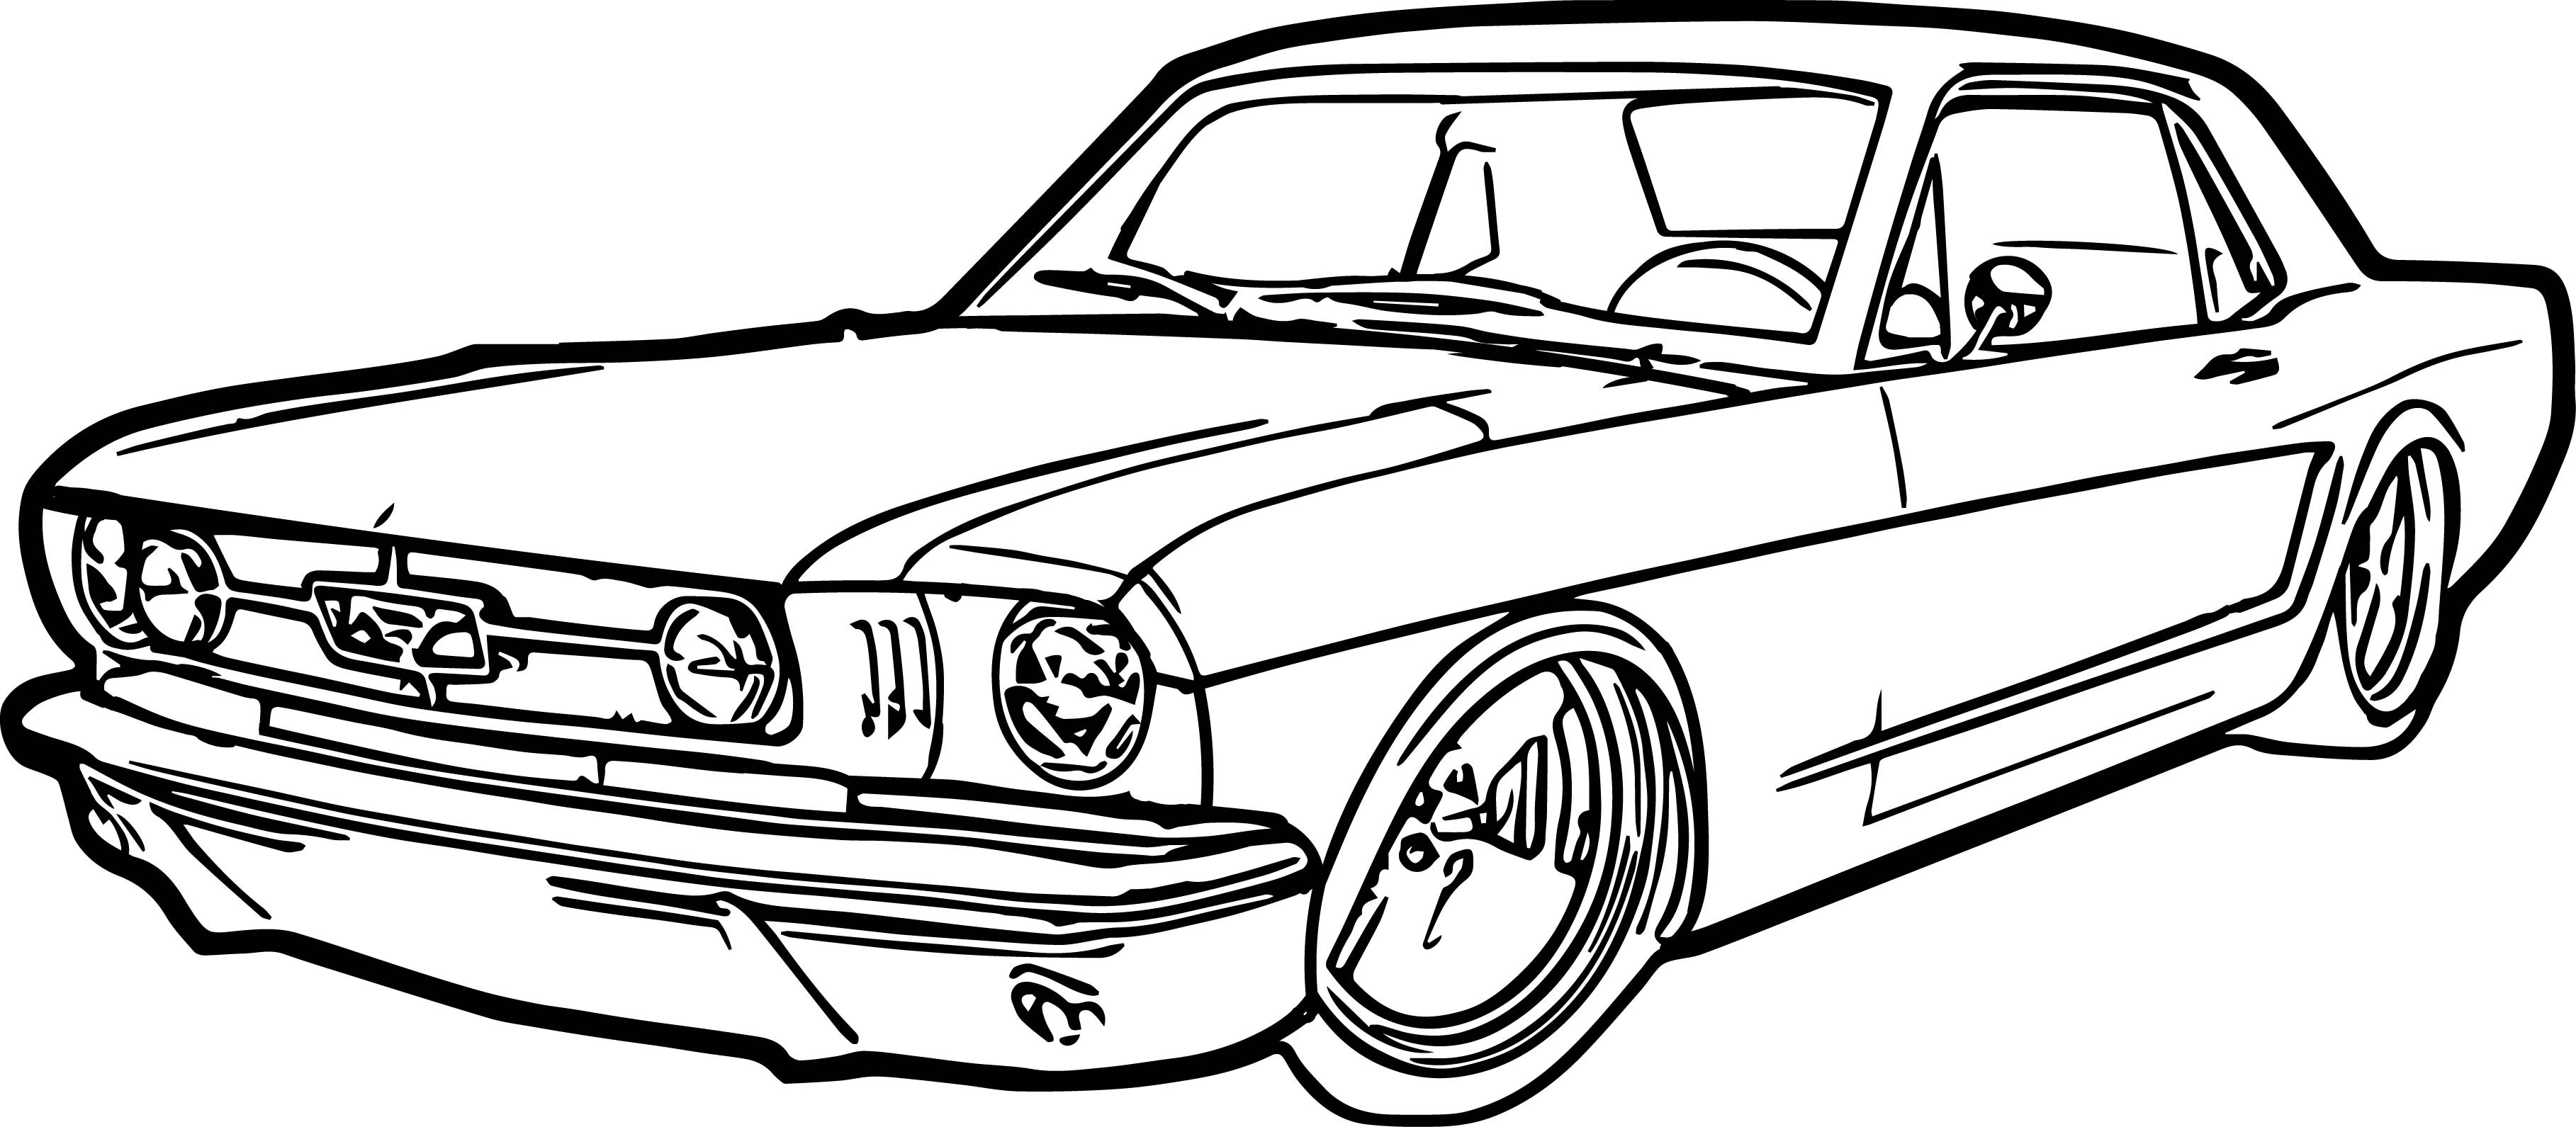 mustang coloring page mustang front coloring pages coloring mustang page